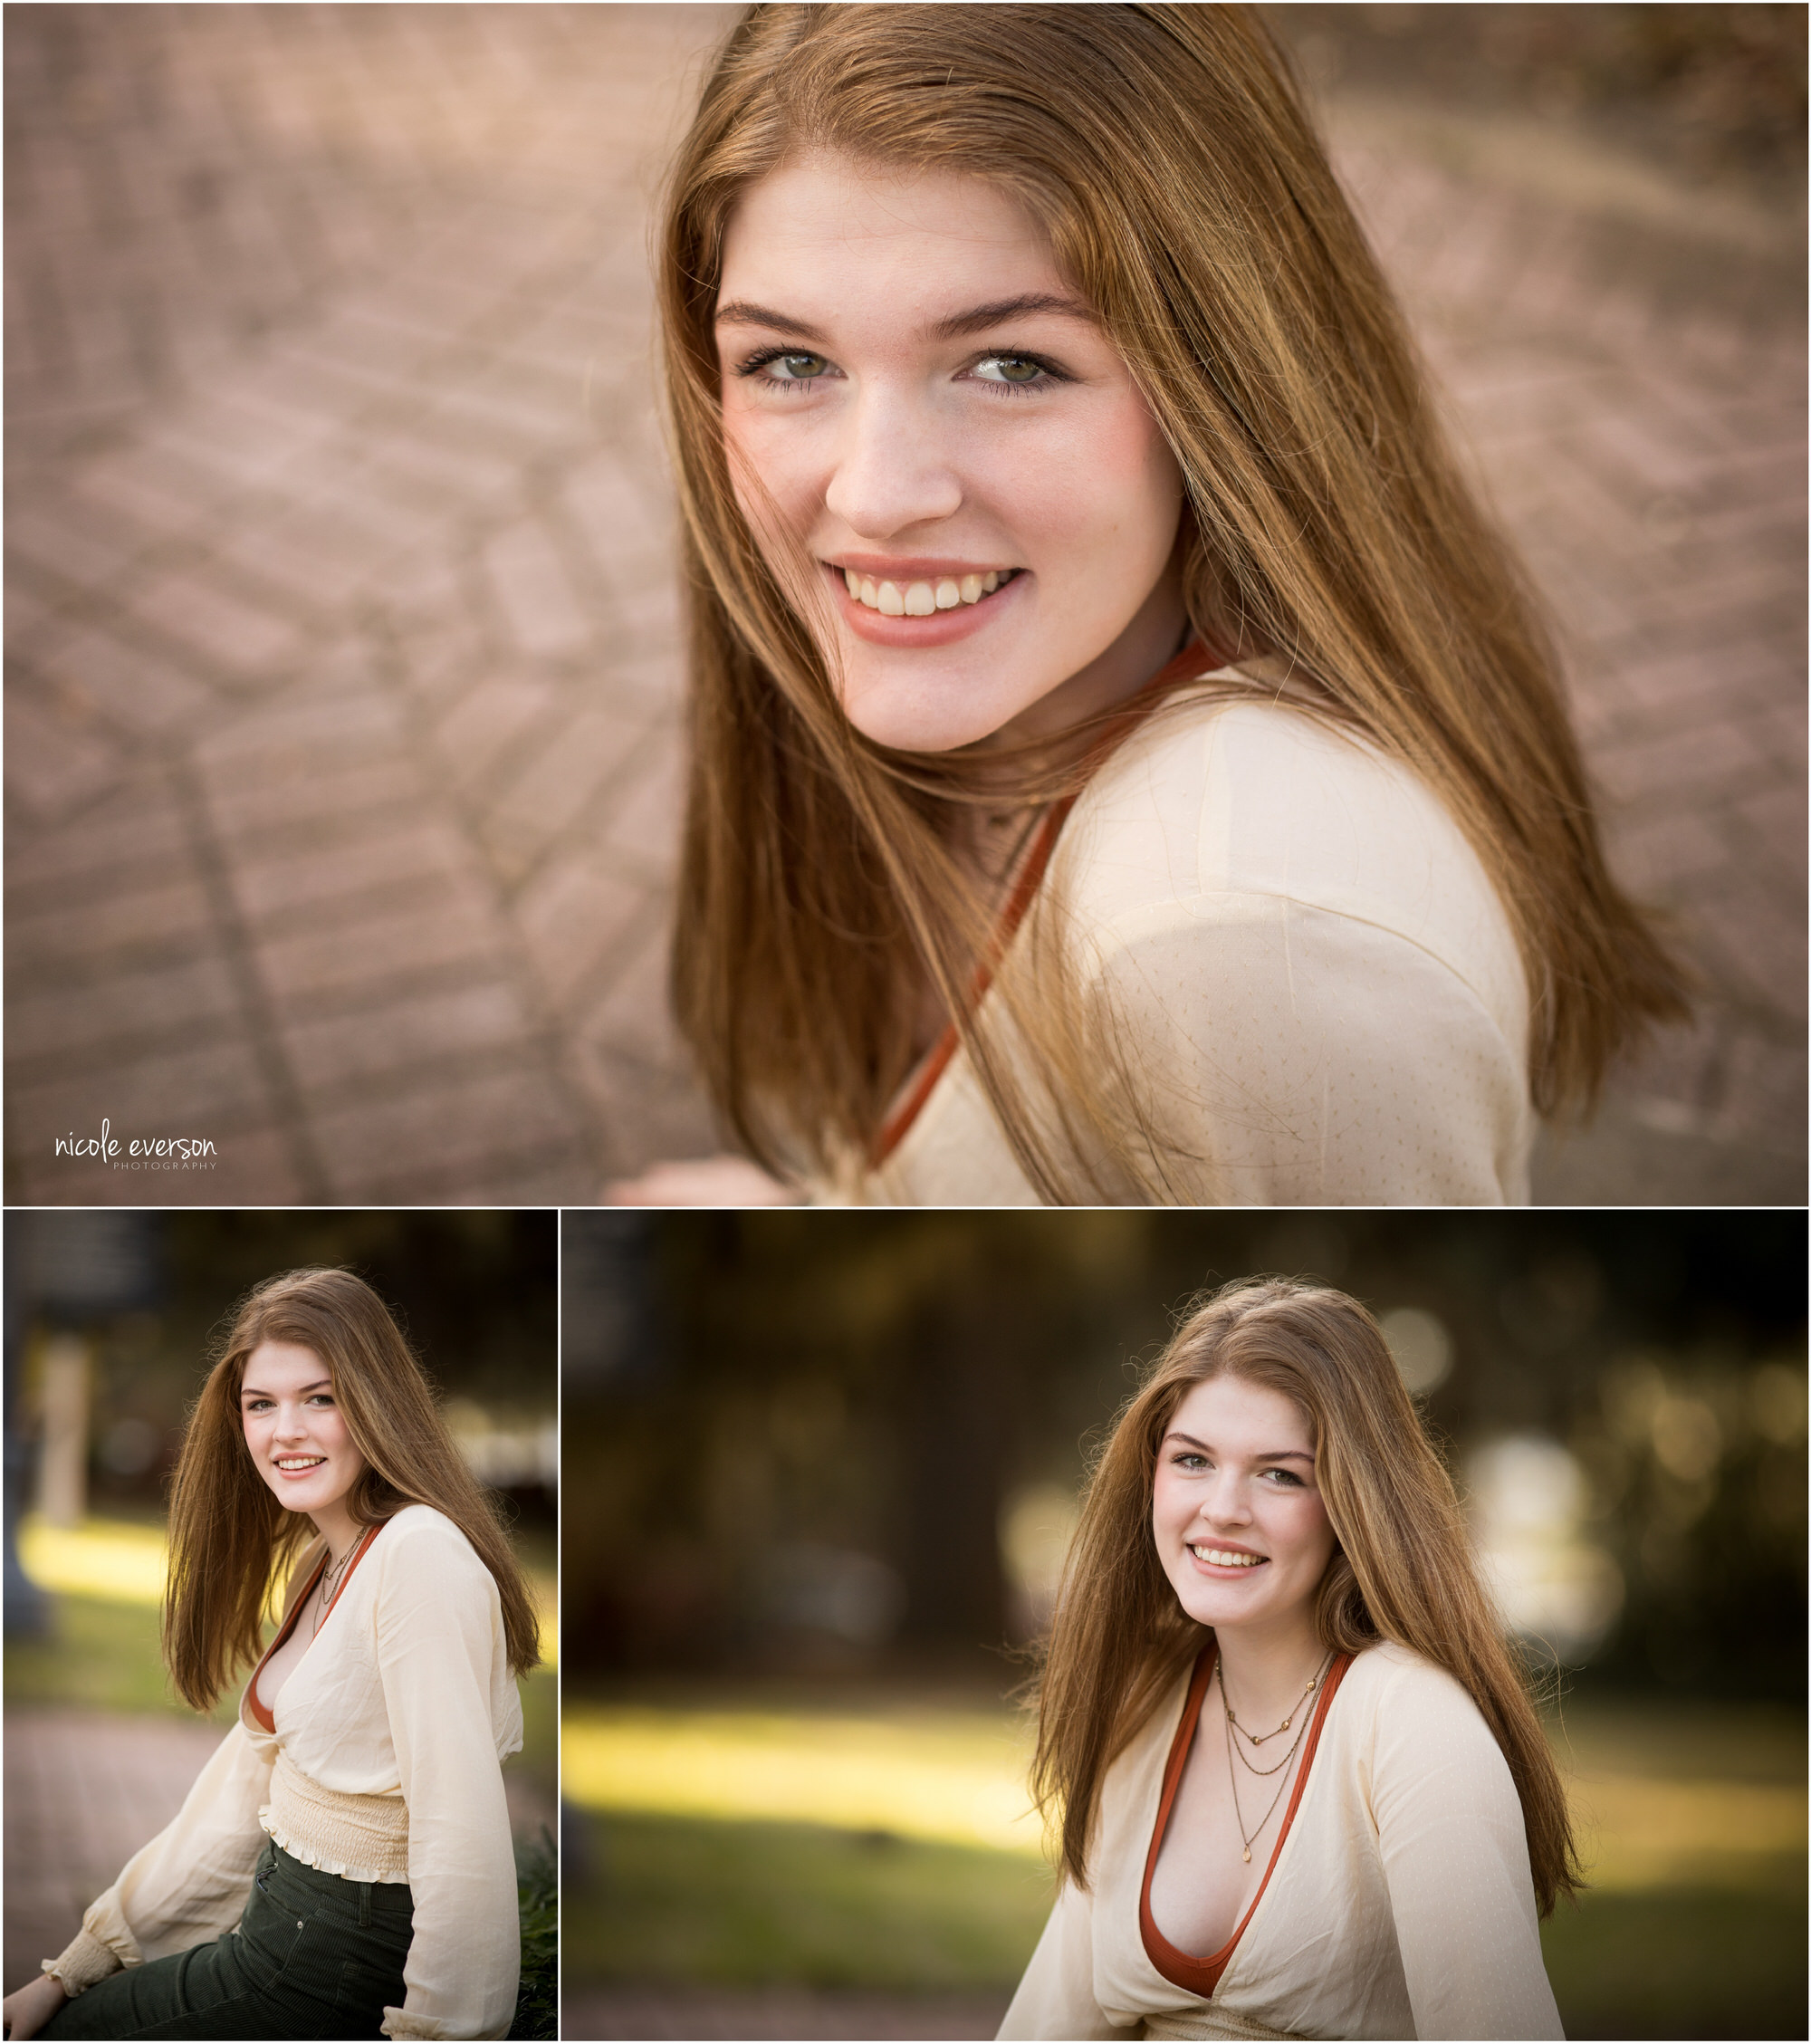 High school senior girl in a cream top and jeans in Tallahassee. Tallahassee Florida Senior Photography by Nicole Everson Photography.